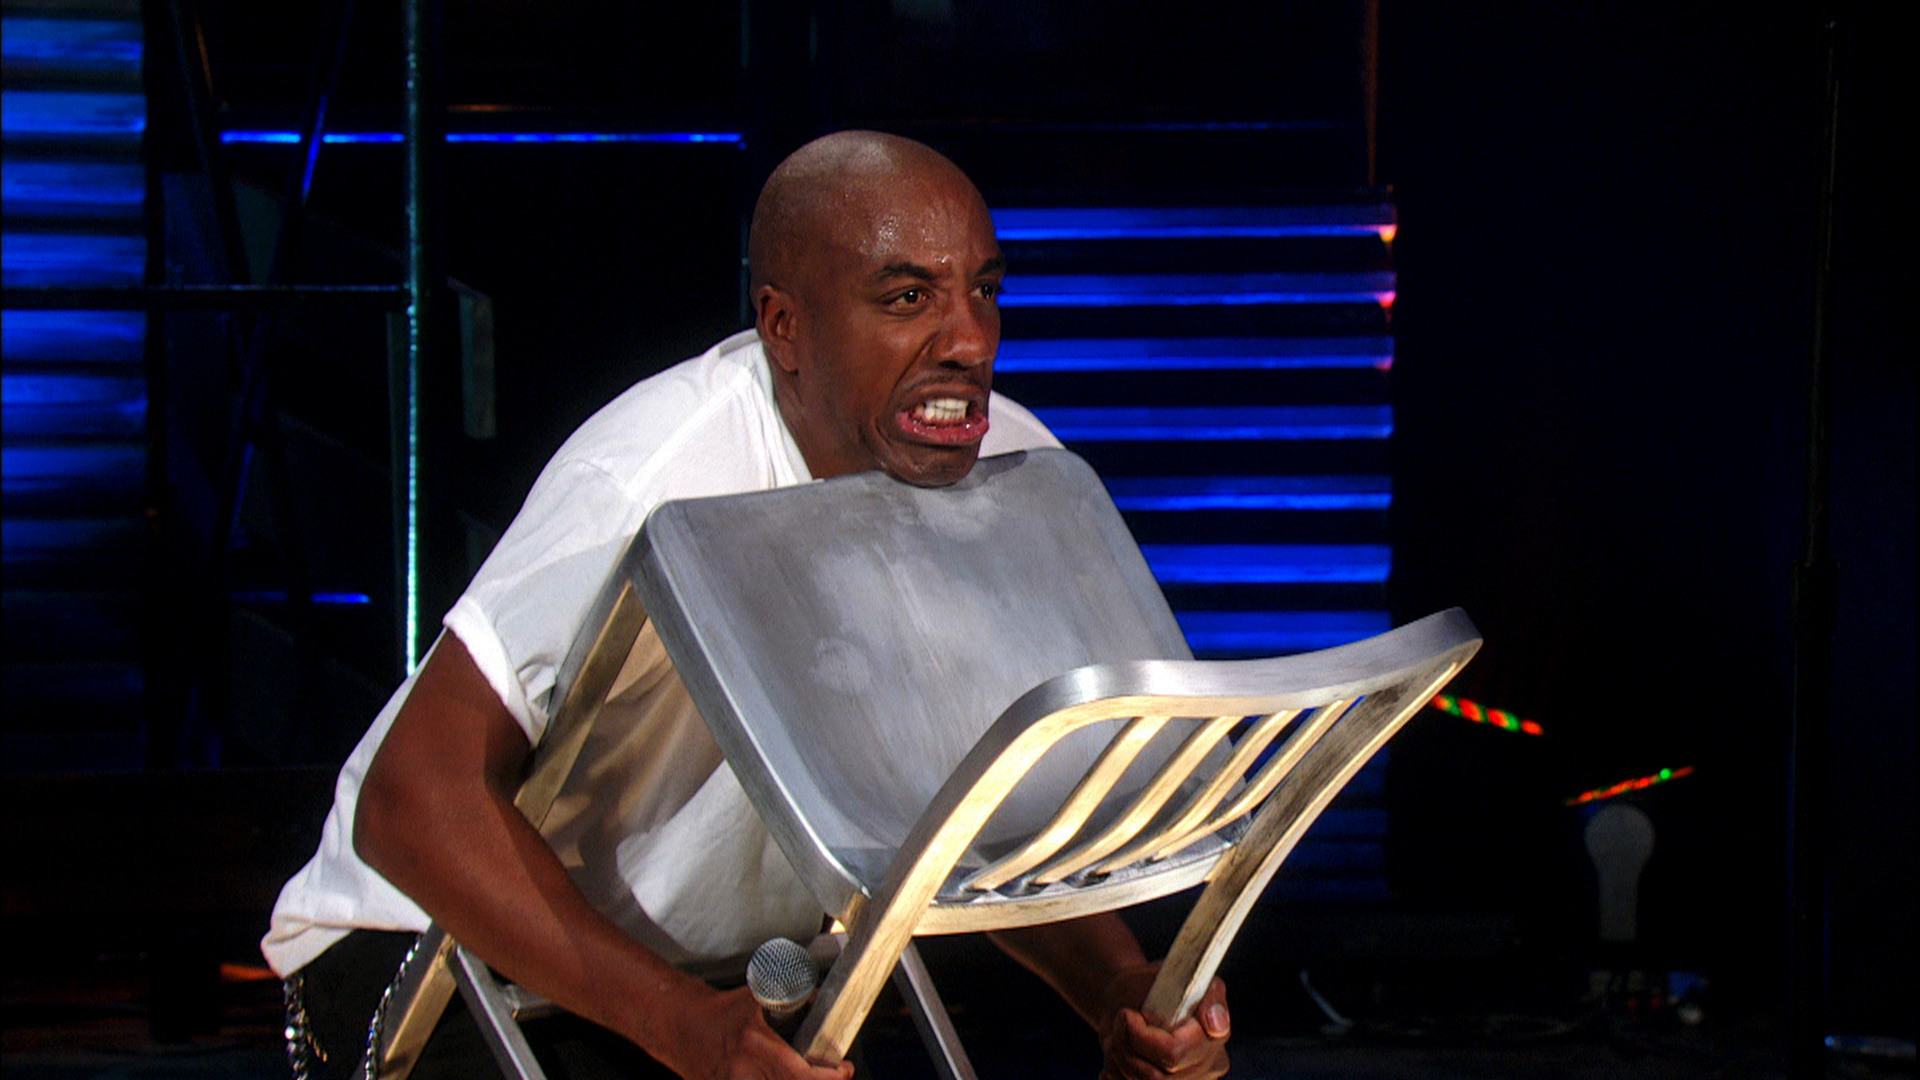 Uncensored - JB Smoove - The First Minute